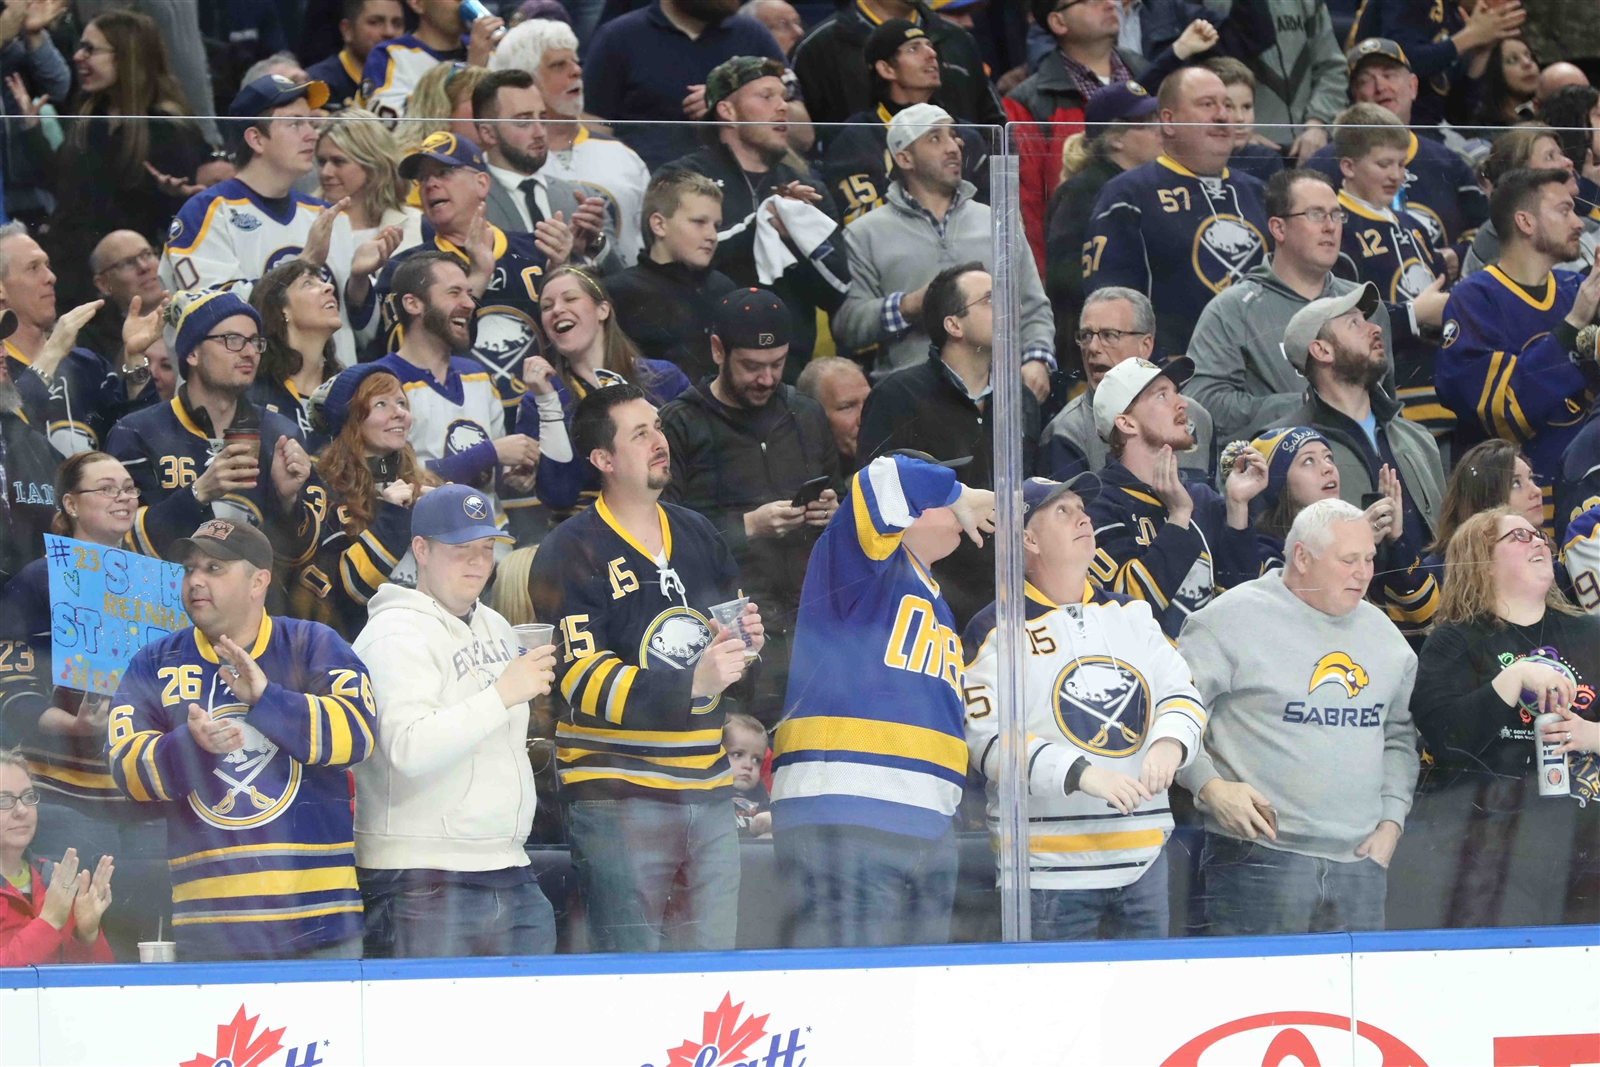 Sabres fans can win an ultimate game experience. (James P. McCoy/Buffalo News file photo)